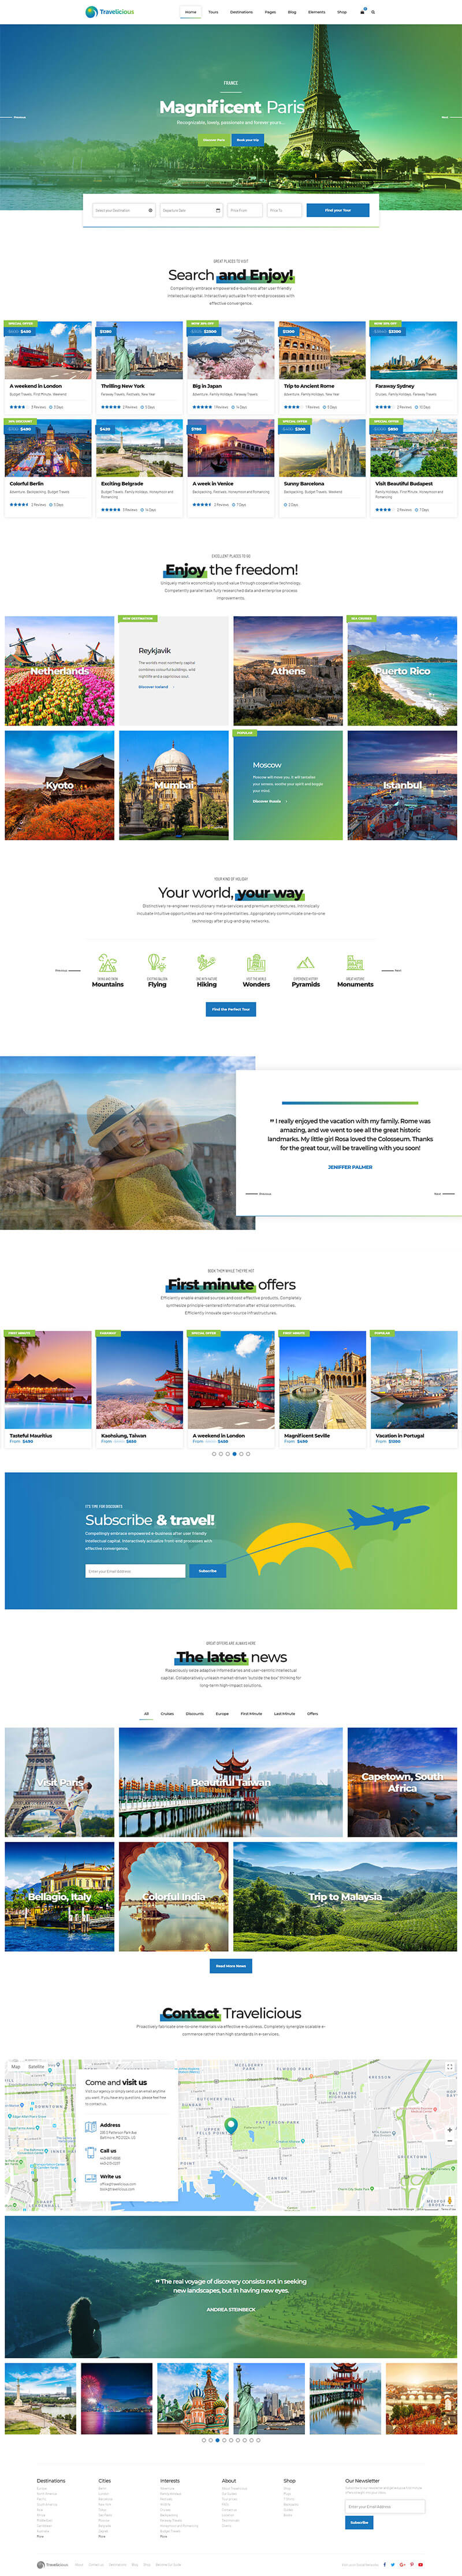 https://travelicious.bold-themes.com/wp-content/uploads/2018/10/demo-home-standard.jpg